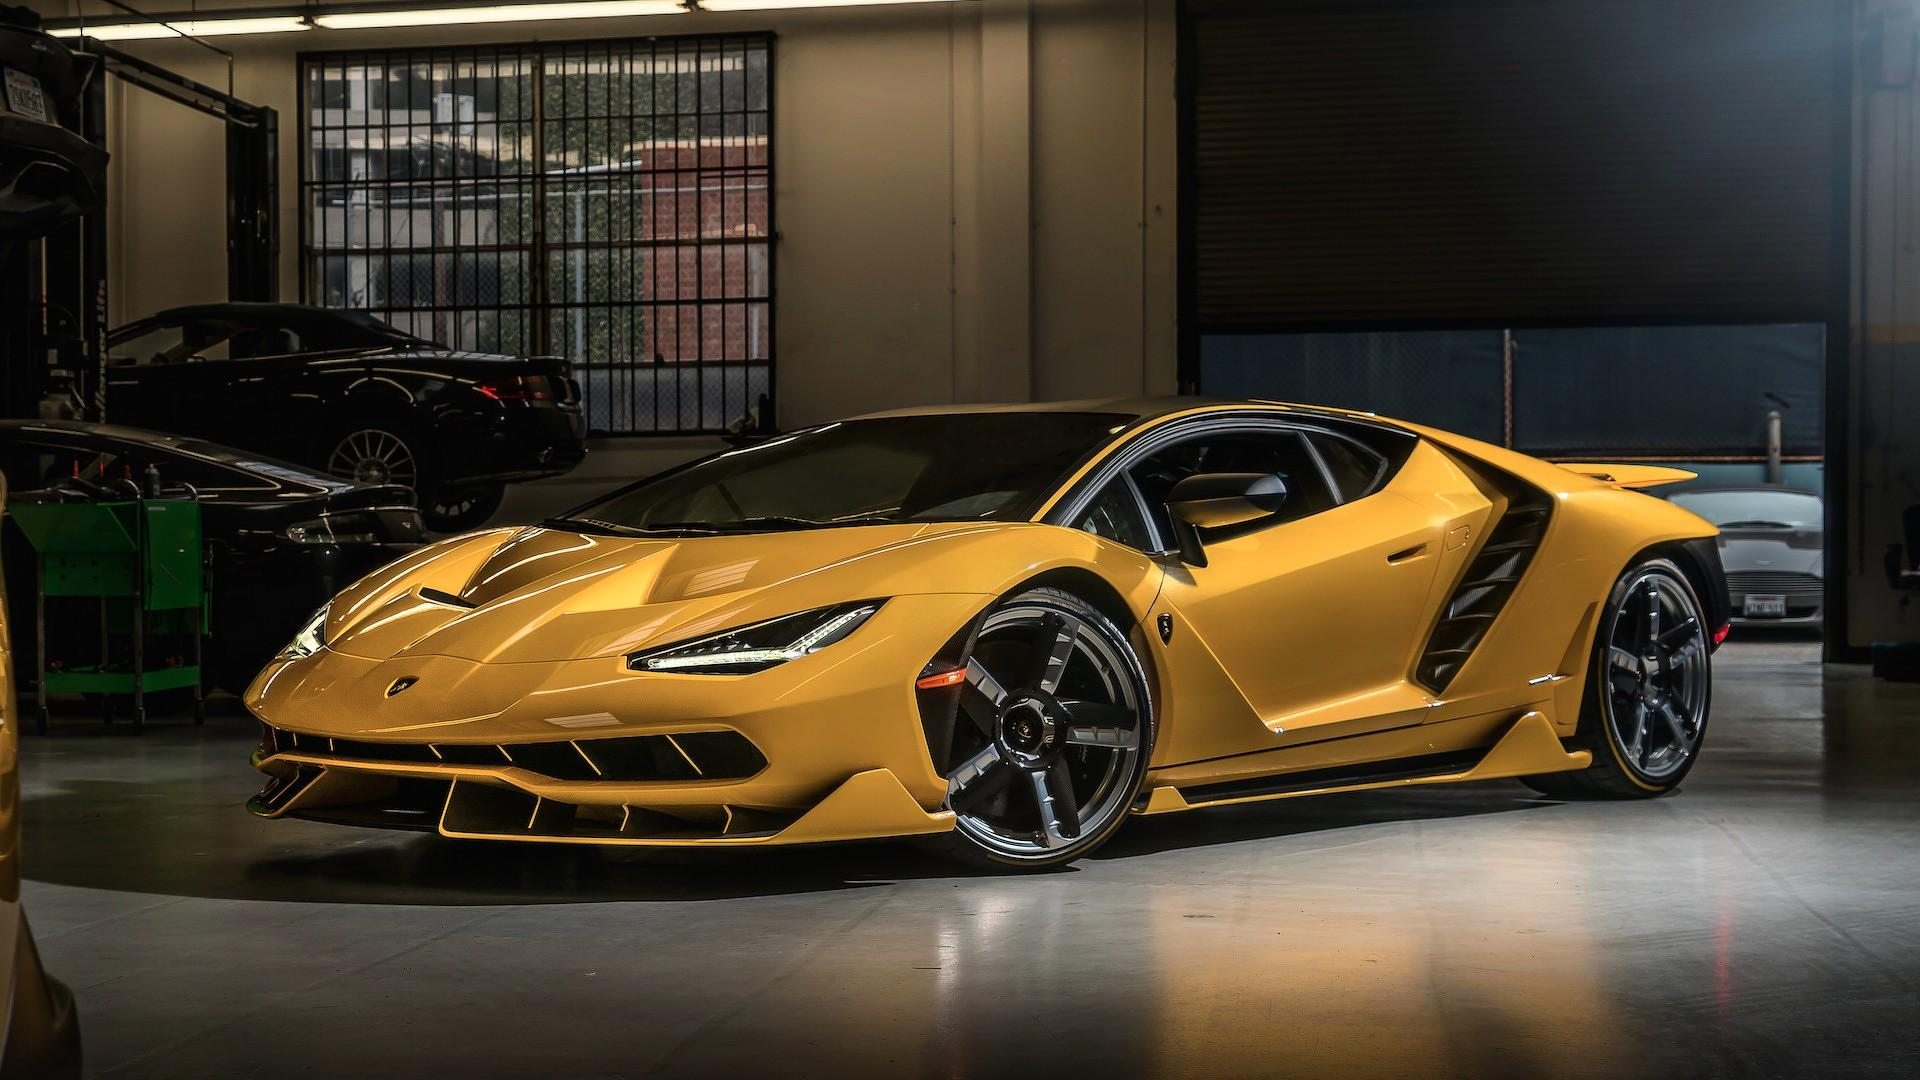 Car Lineup Wallpaper Two New Lamborghini Centenarios Have Landed In The U S